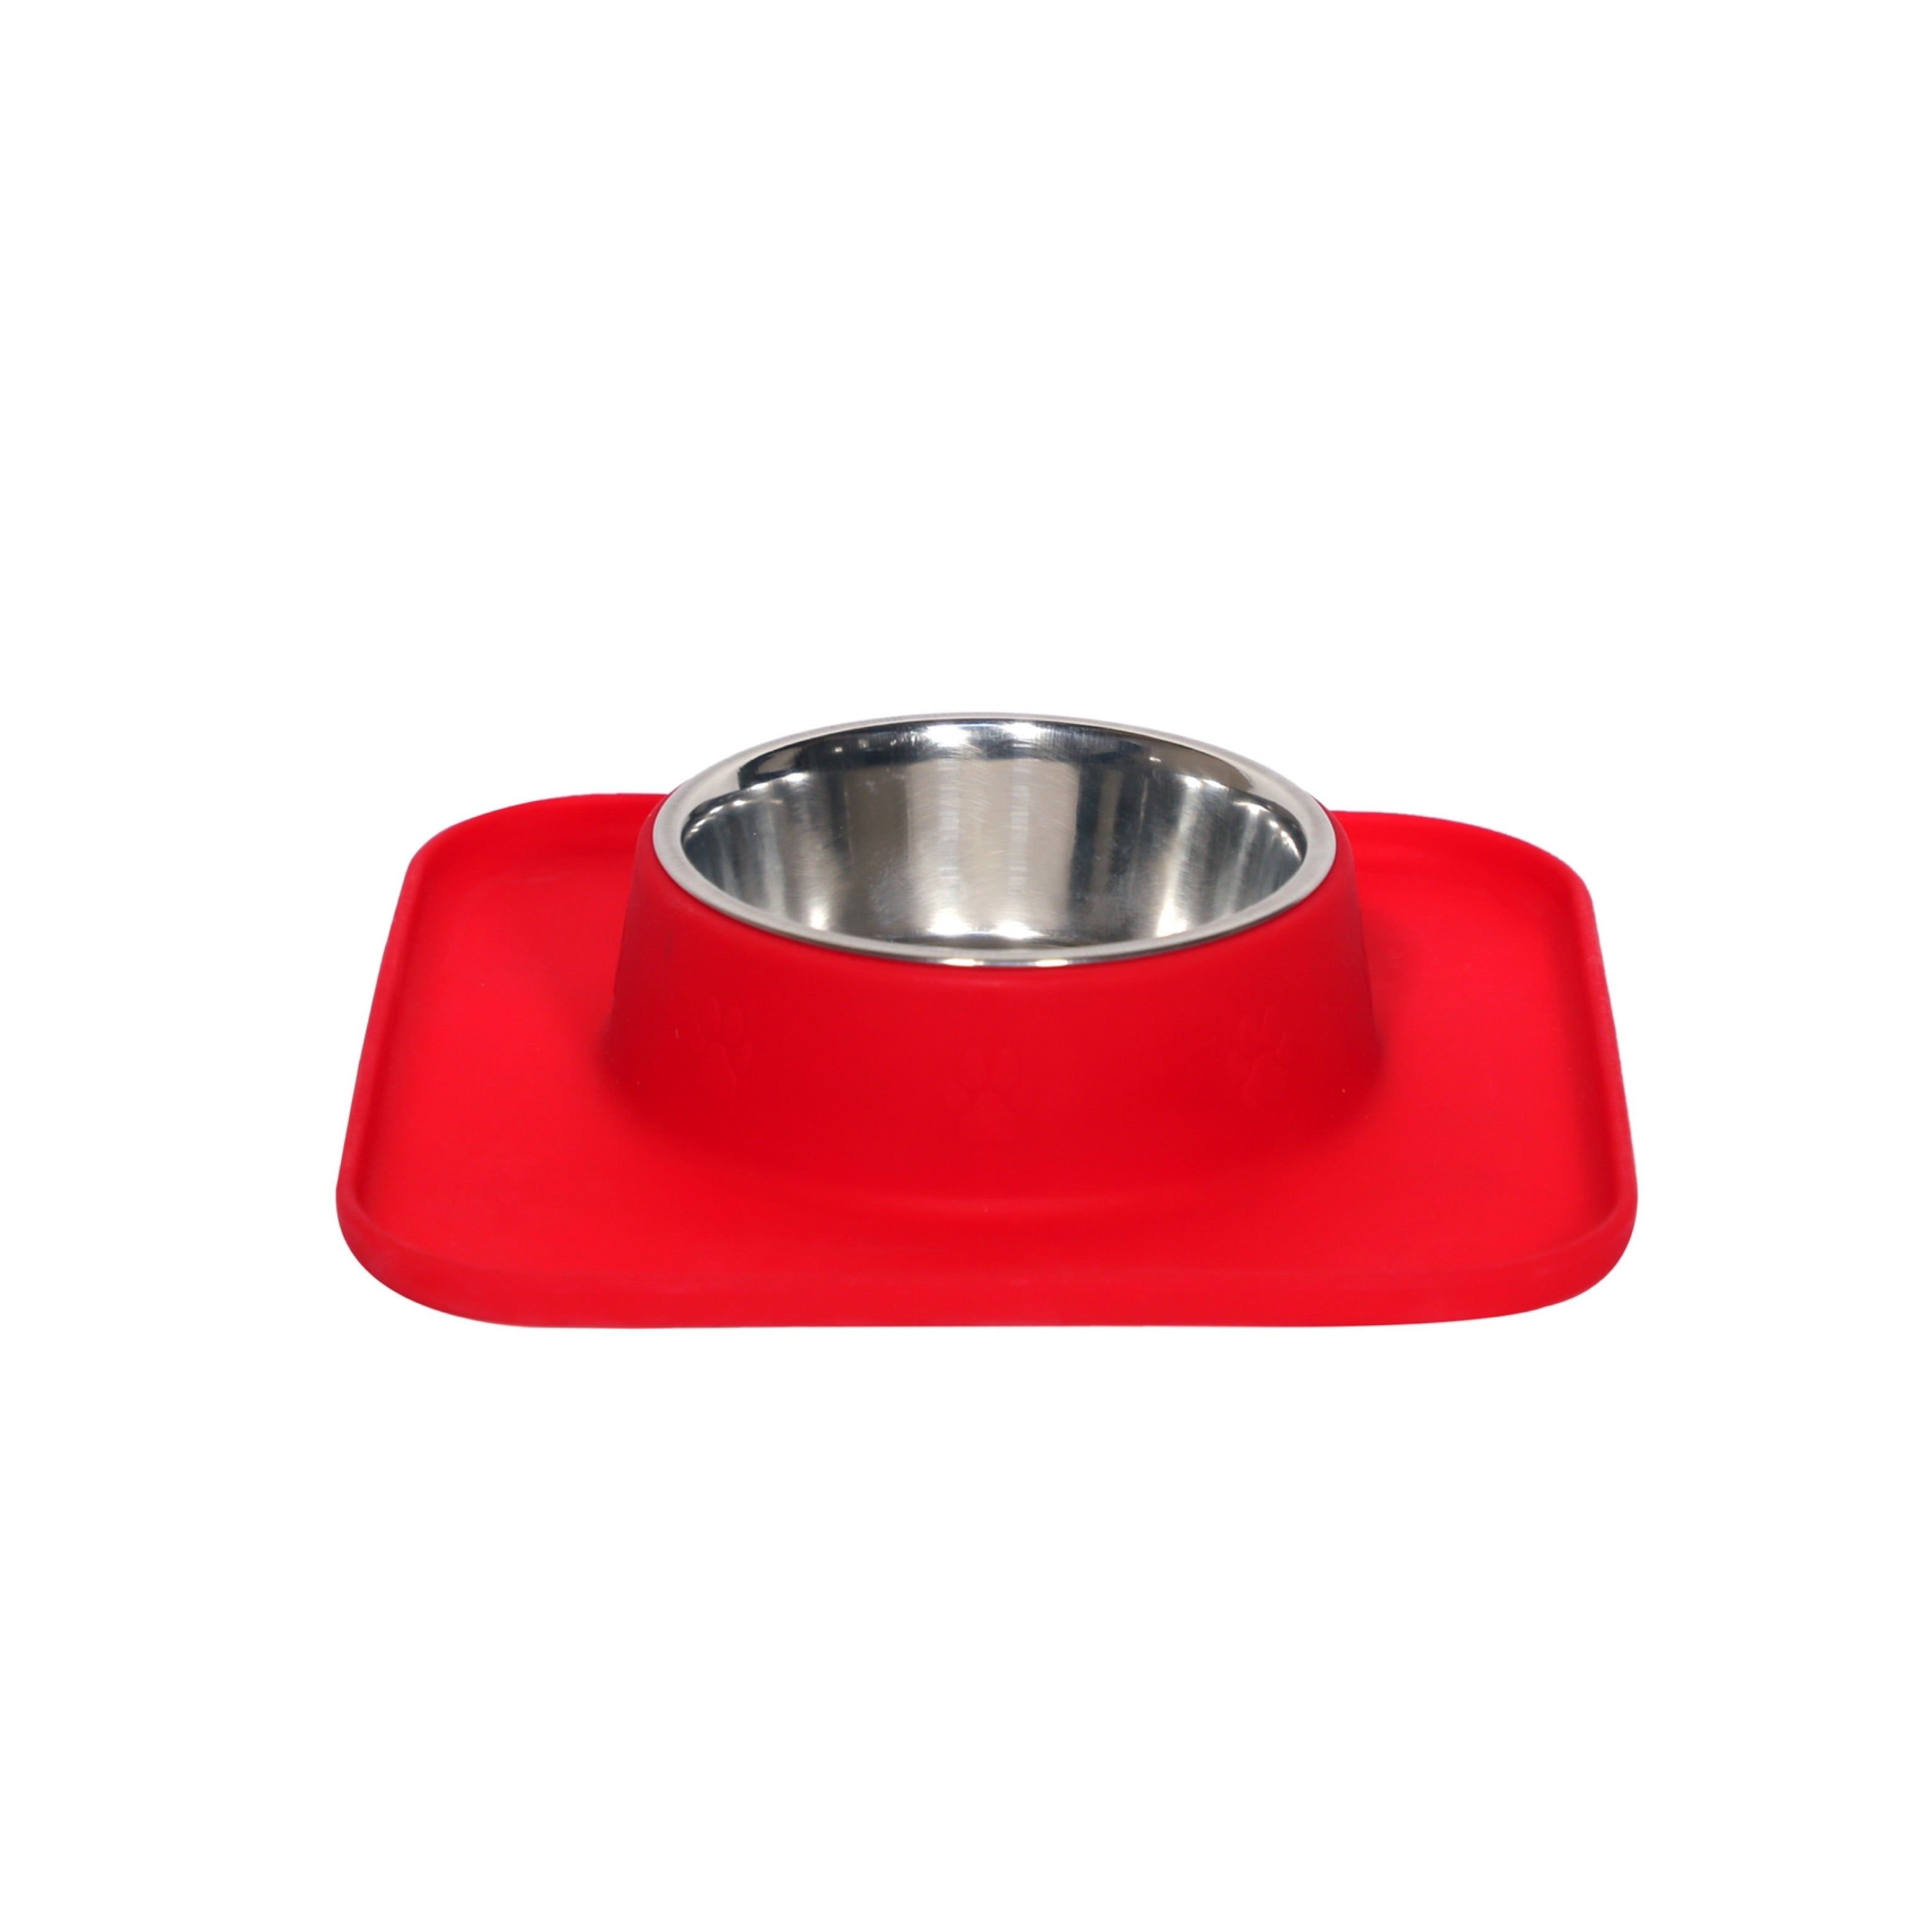 Square Silicon with Stainless Steel Pet Bowl- Red